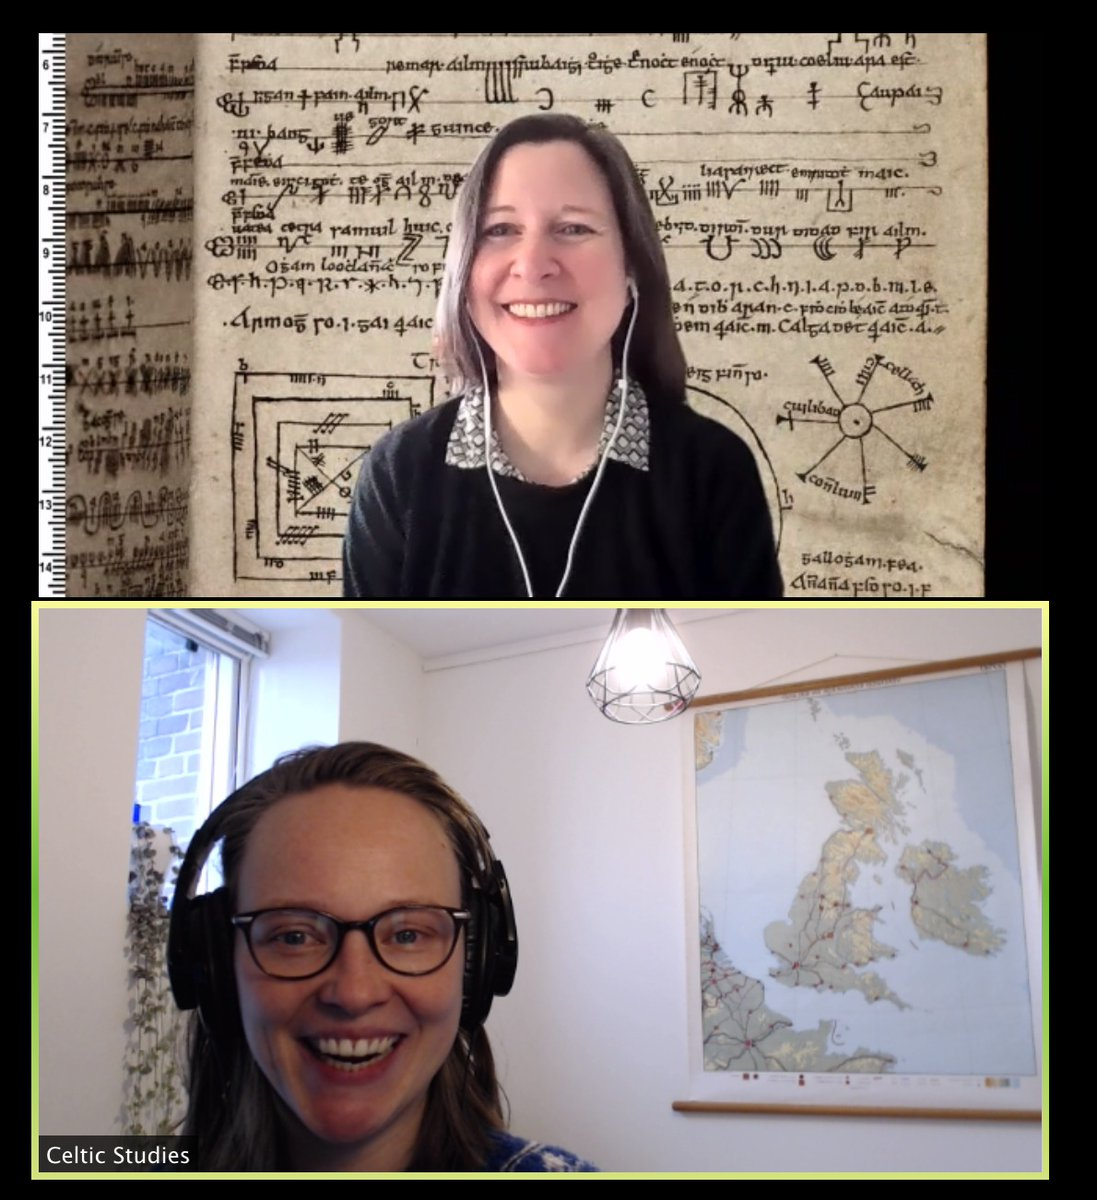 test Twitter Media - 🎙️Next up in the SCS Research #Podcast #Níhansae  we have Bergin Fellow @ChantalKobel discussing medieval brain balls, editing, & the suitability of early Irish sagas for a proper Netflix show. Enjoy!  #manuscripts #DIASdiscovers #IrishPodcast  https://t.co/pGP2WLndLM https://t.co/sNZboOvJ0F